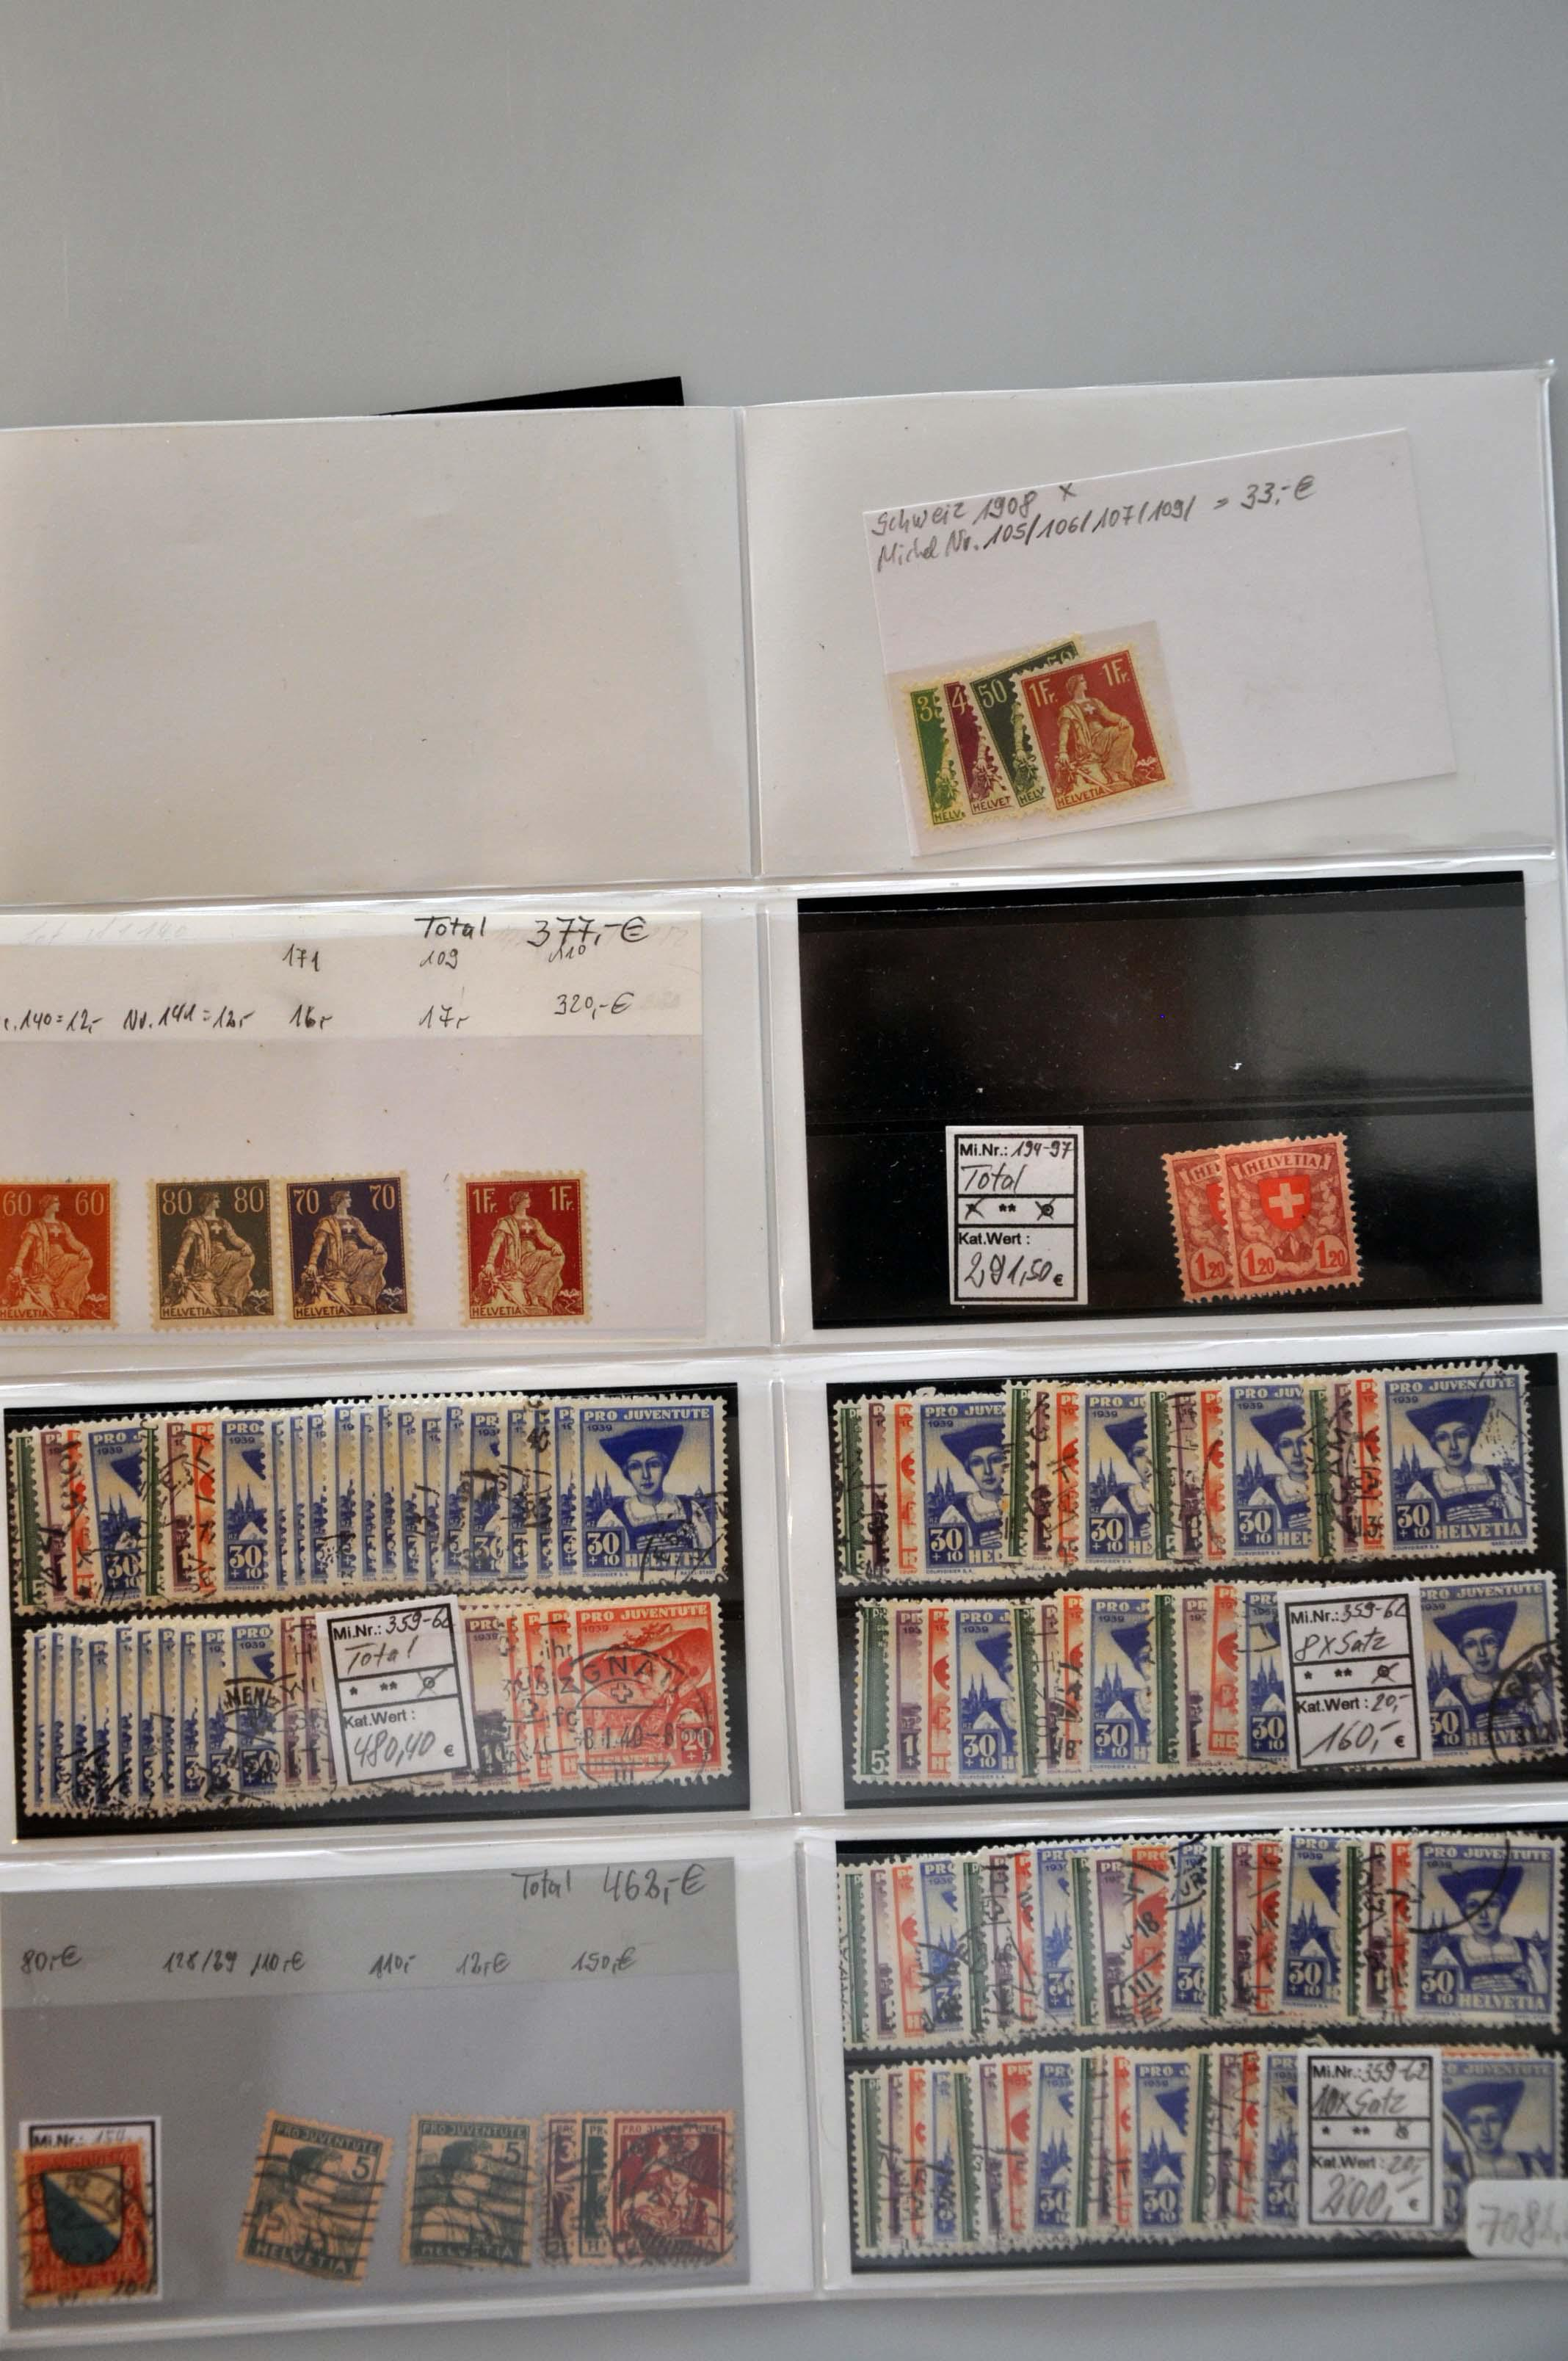 Lot 1350 - Switzerland Switzerland -  Corinphila Veilingen Auction 245-246 Day 2 - Foreign countries - Collections and lots, Foreign countries - Boxes and literature